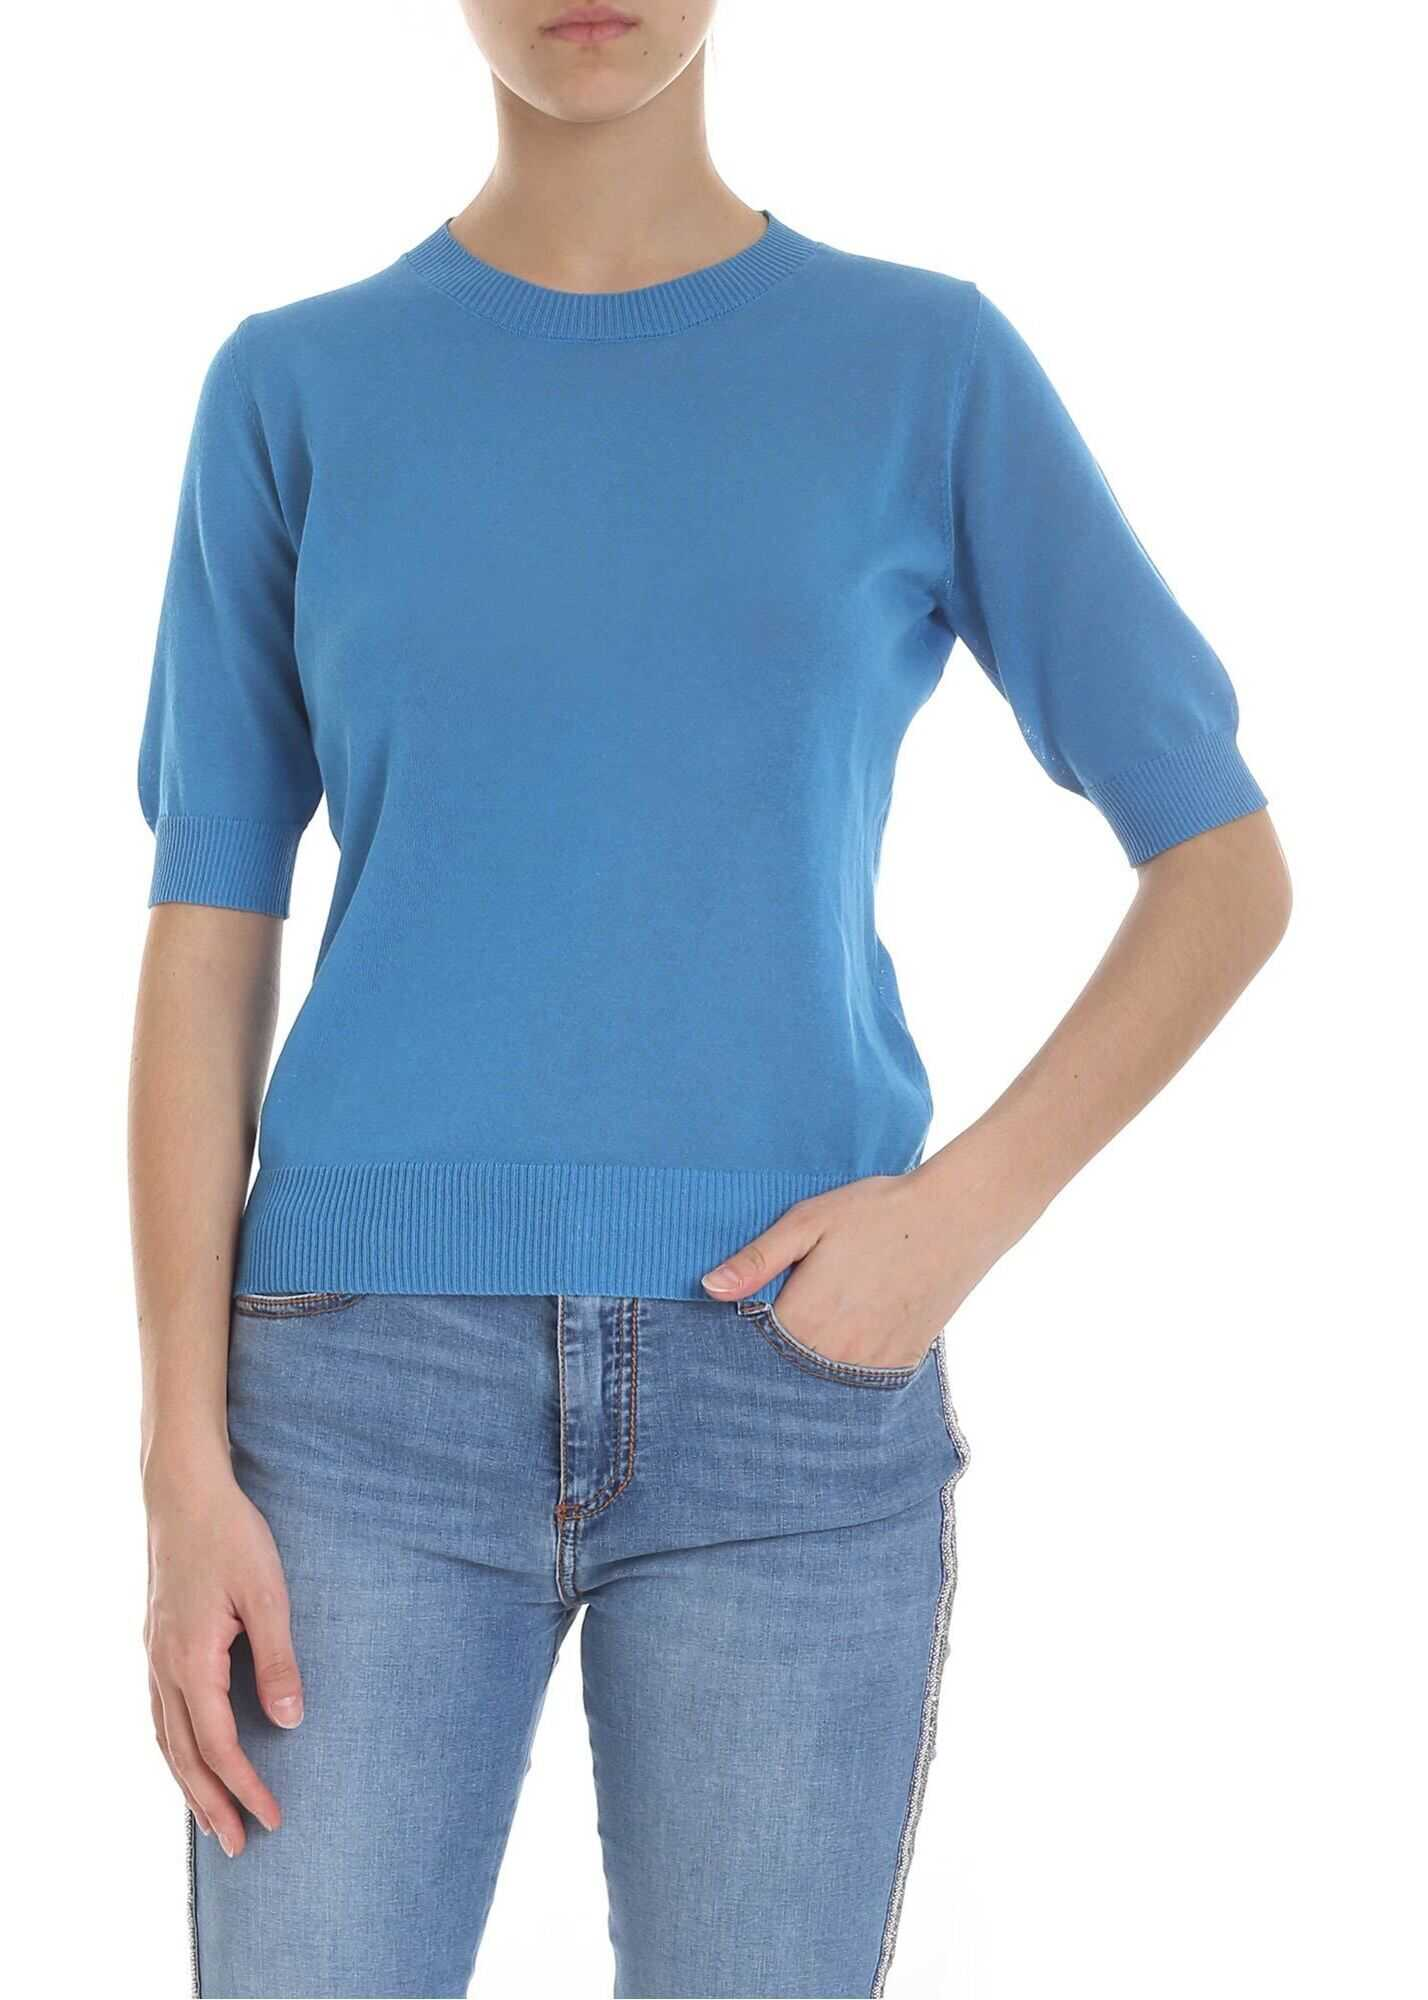 Ermanno Scervino Turquoise Knitted T-Shirt Light Blue